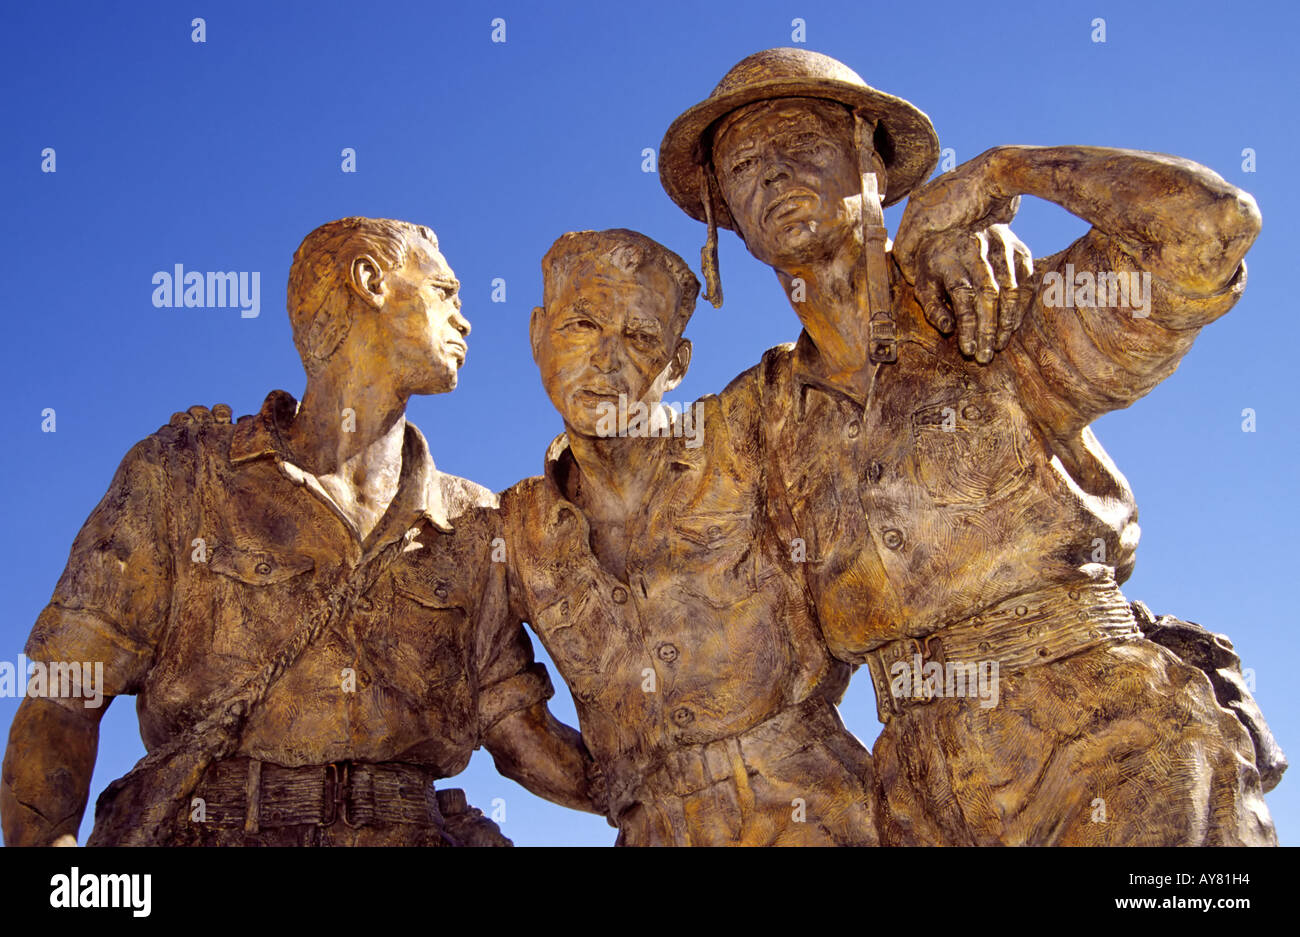 Bronze sculpture honors pow soldiers and the